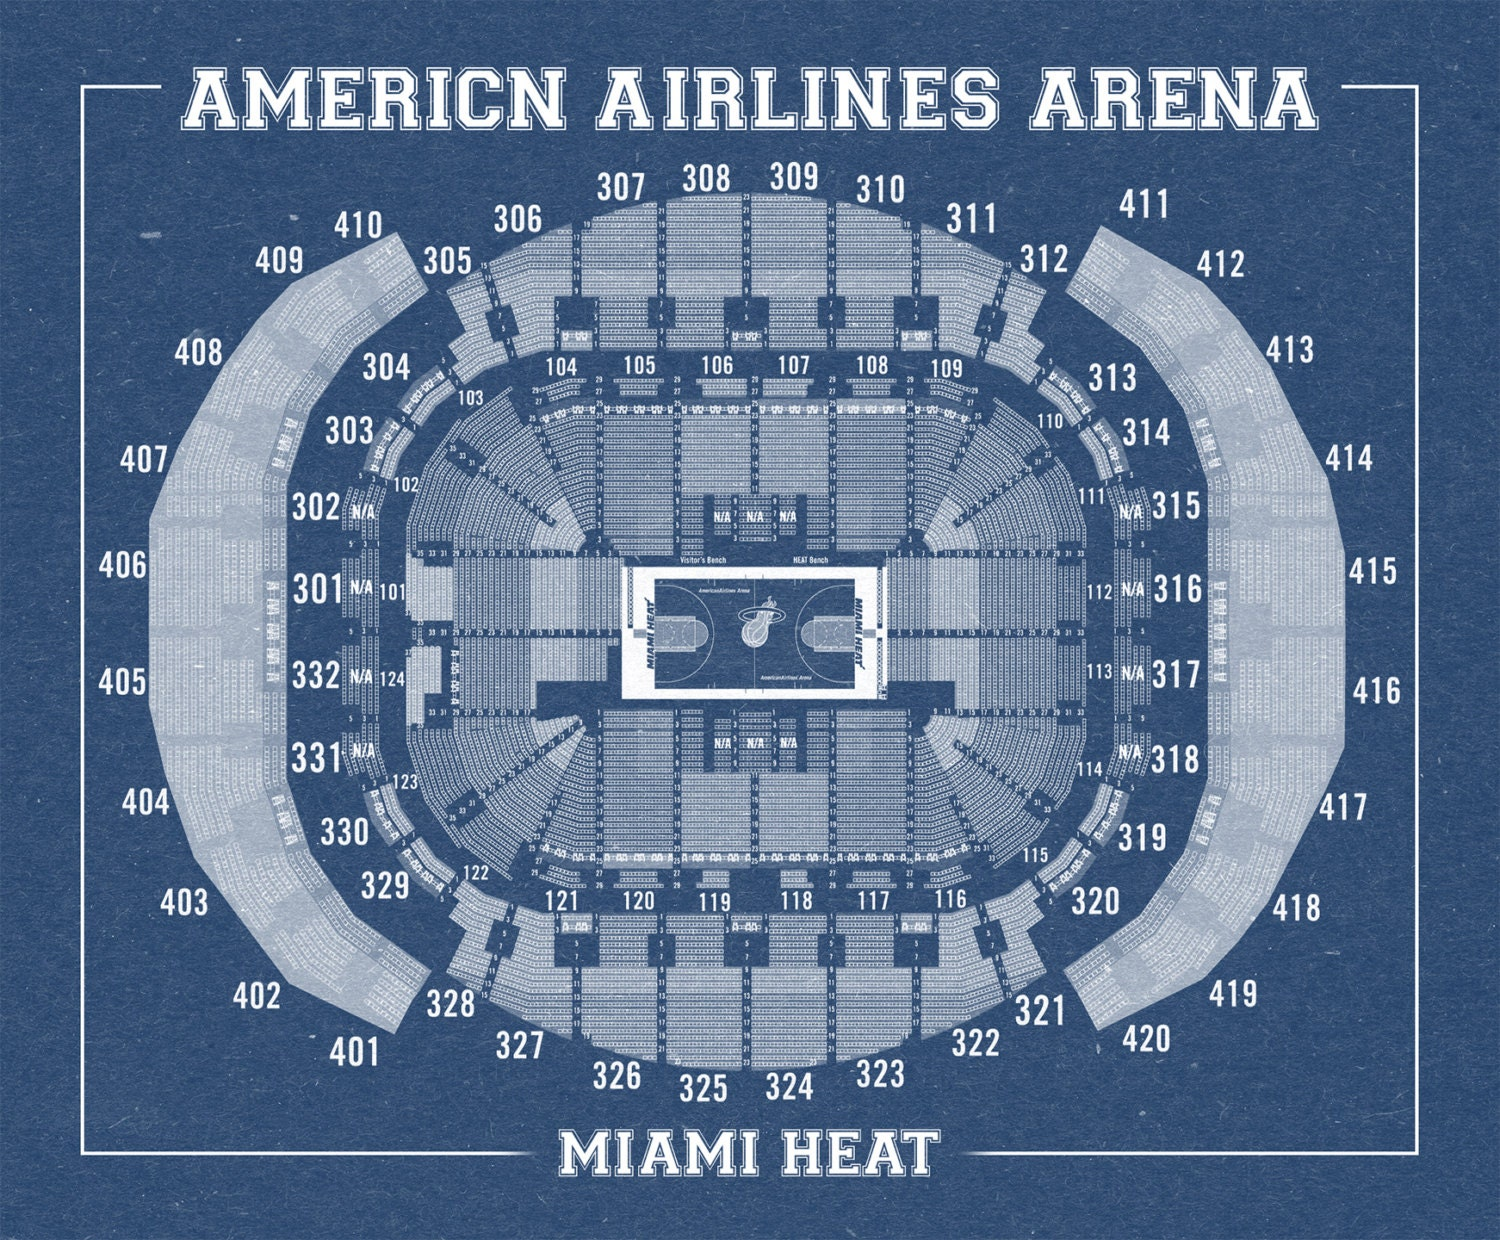 vintage print of american airlines arena seating chart on